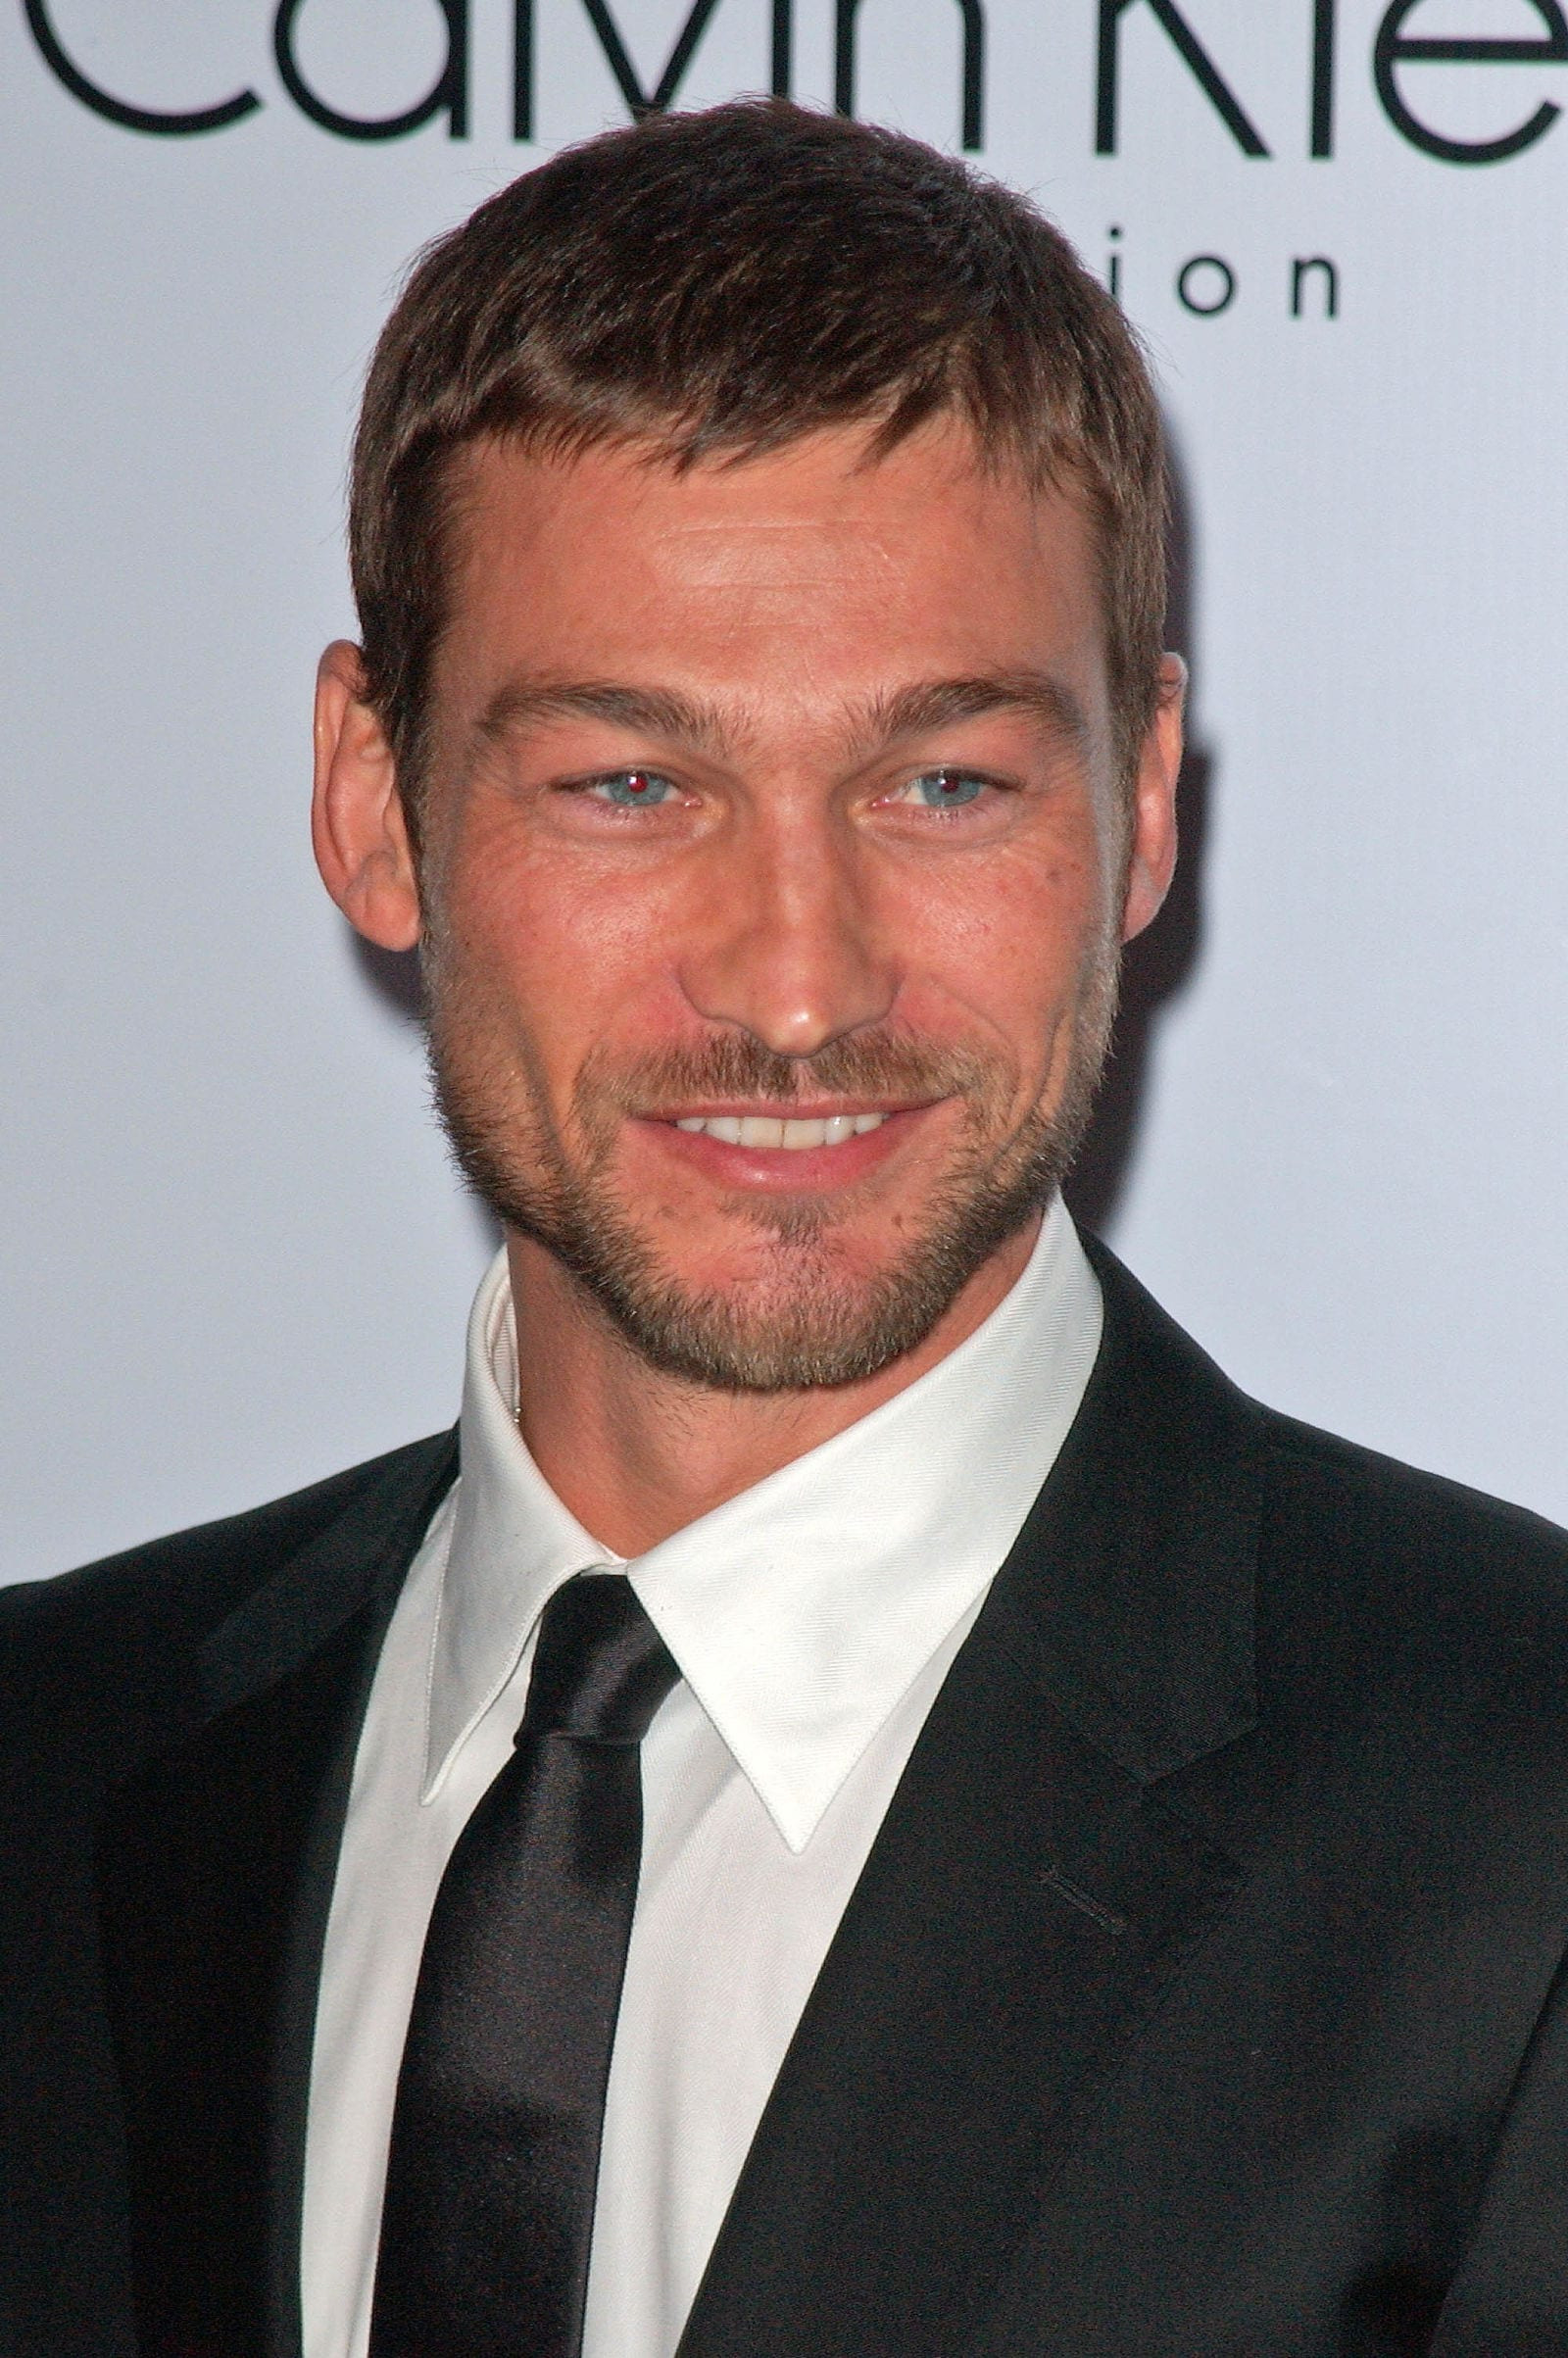 Andy Whitfield ceasar hairstyle by s_bukley